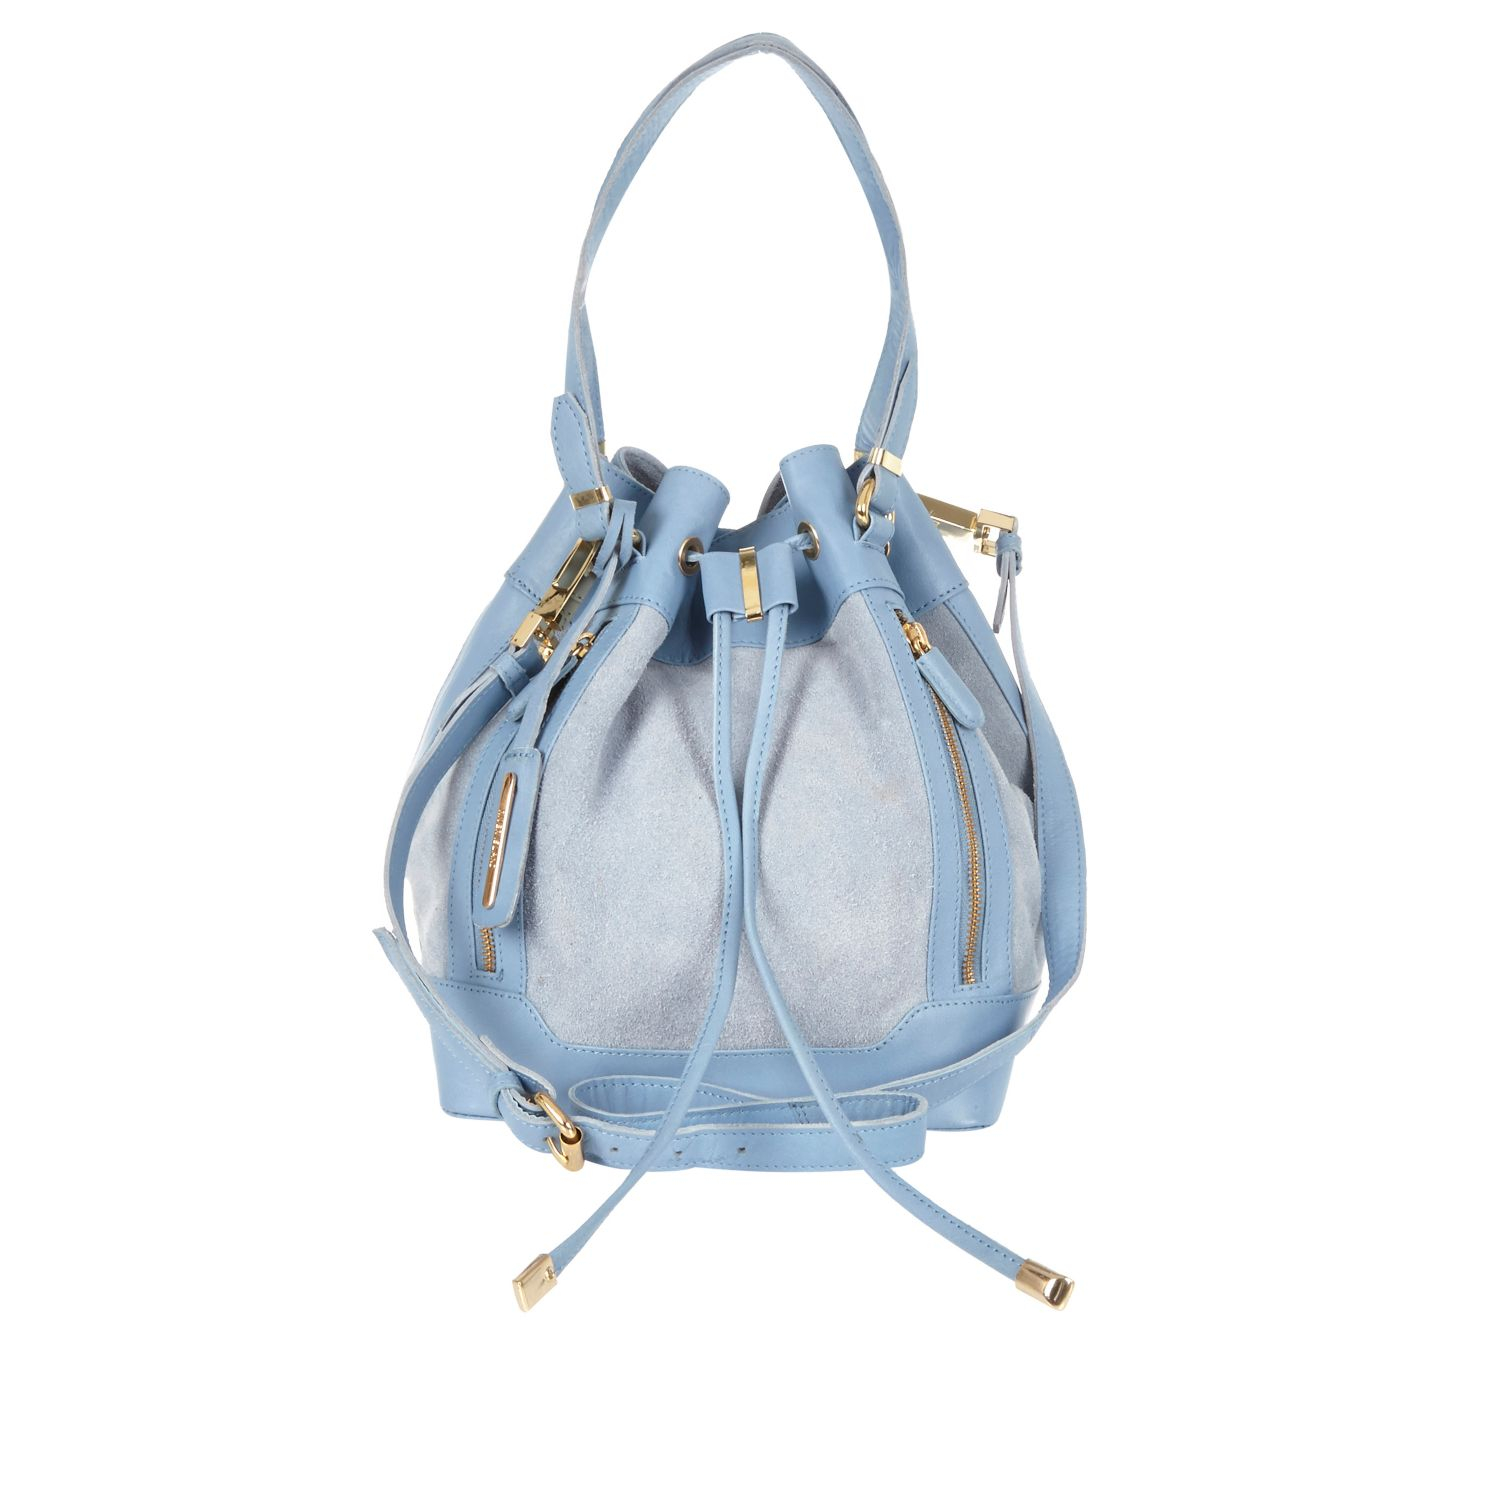 River Island Light Blue Leather Duffle Bag in Blue